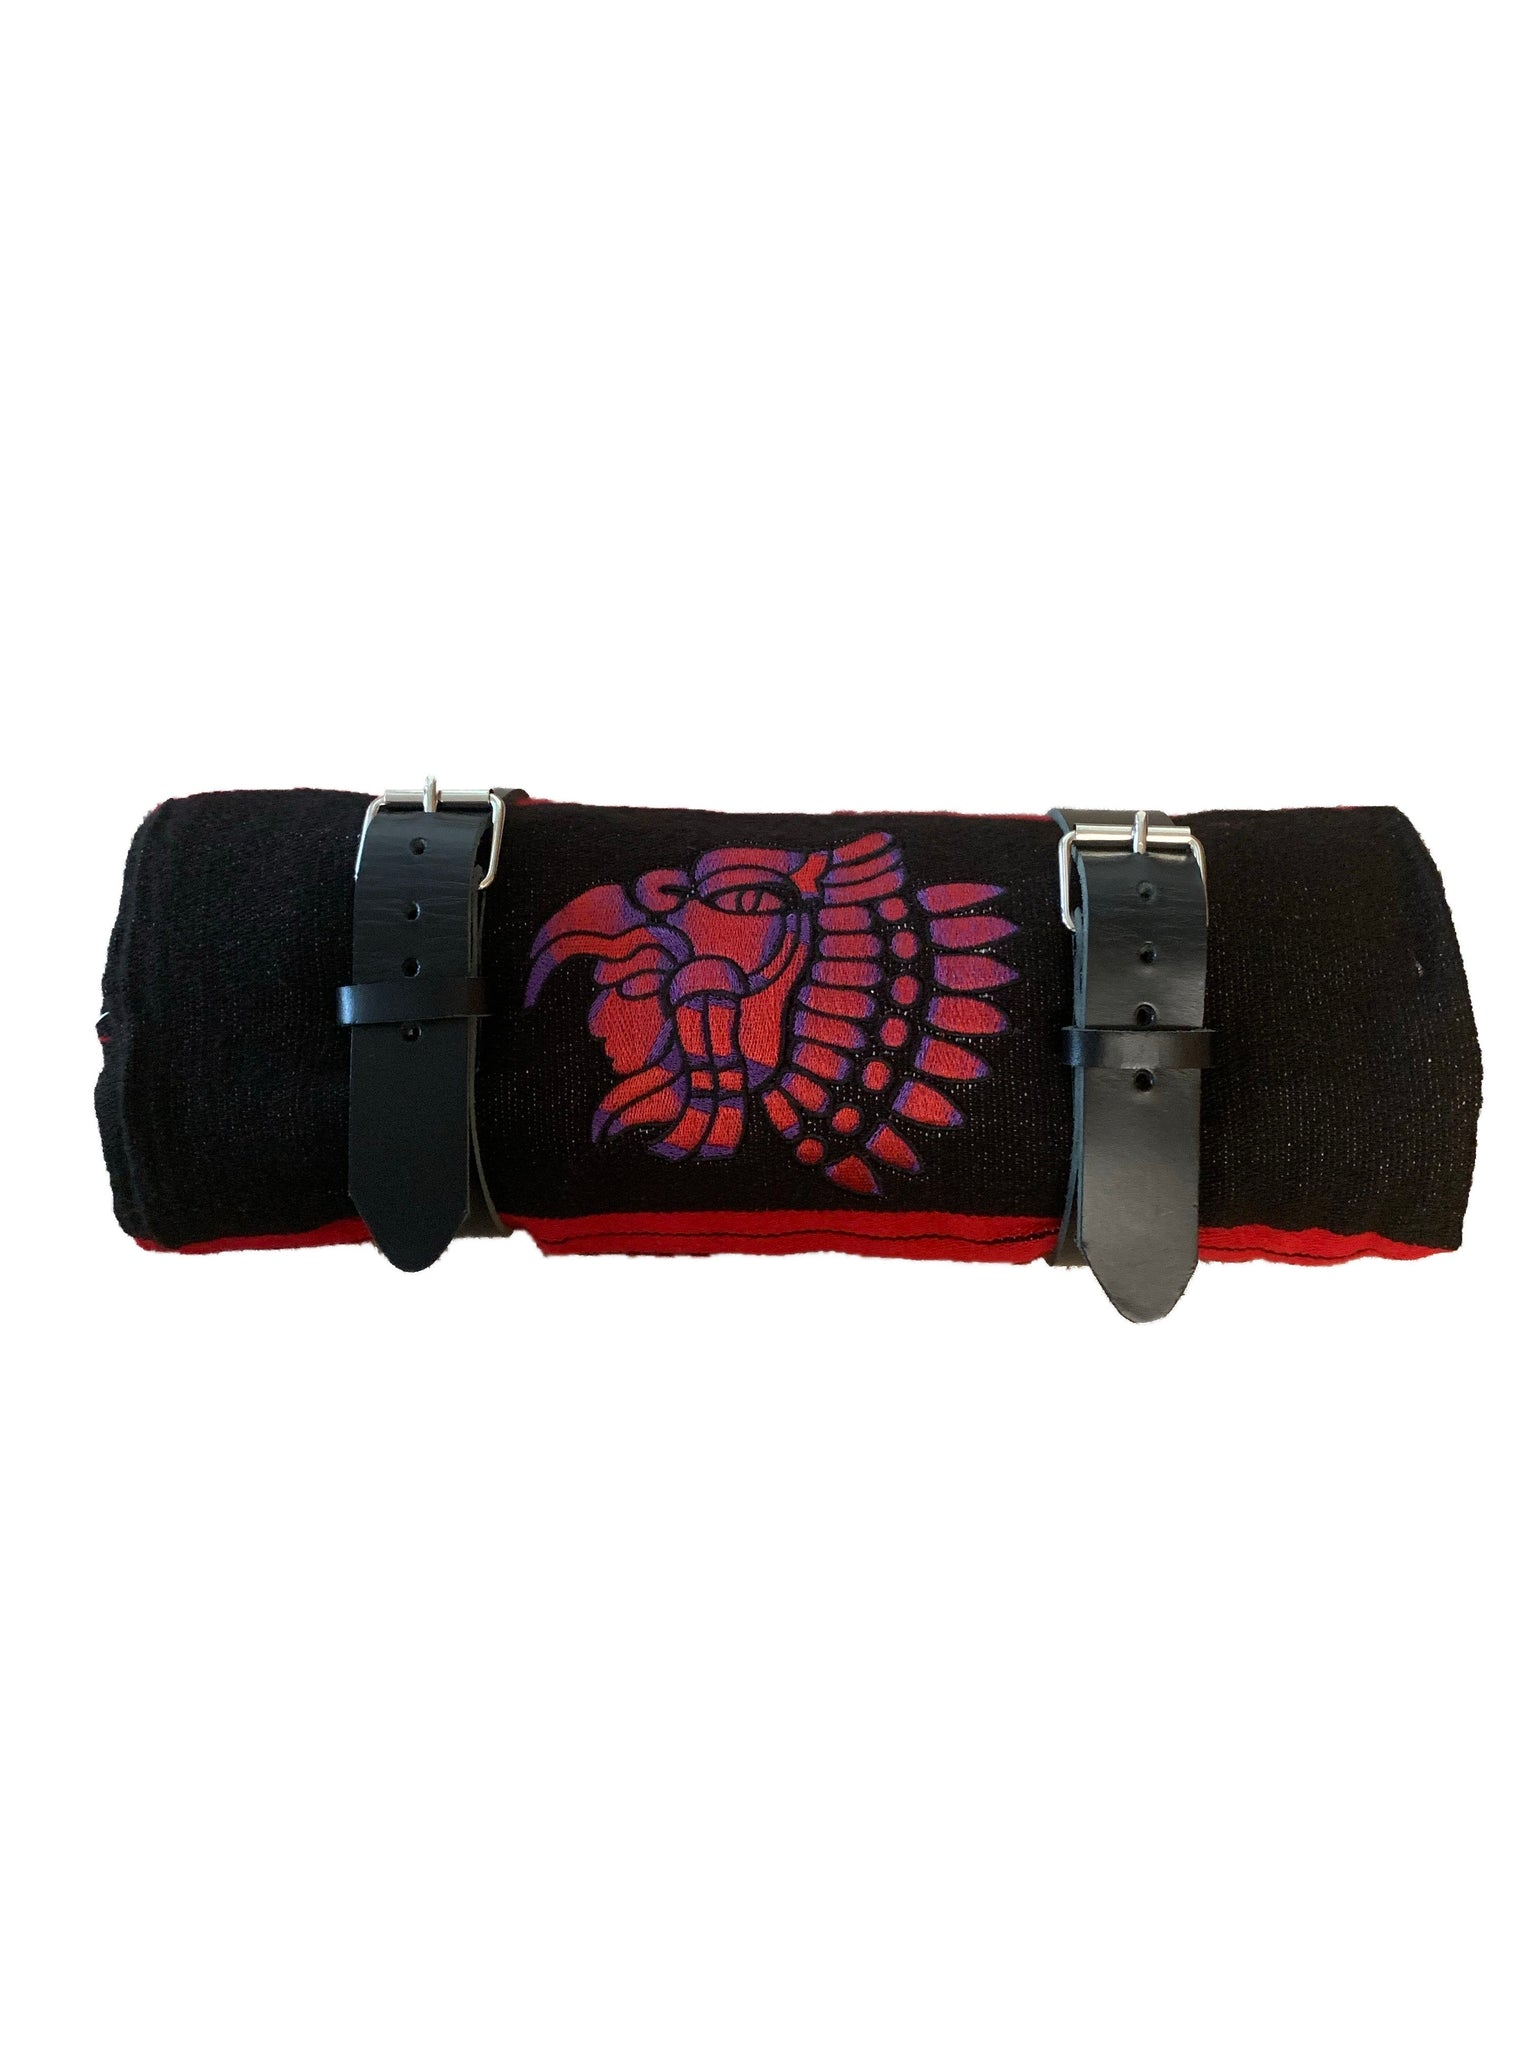 Red And Black Serape Bed Roll Embroidered With Leather Straps For Harl Border Town Industries